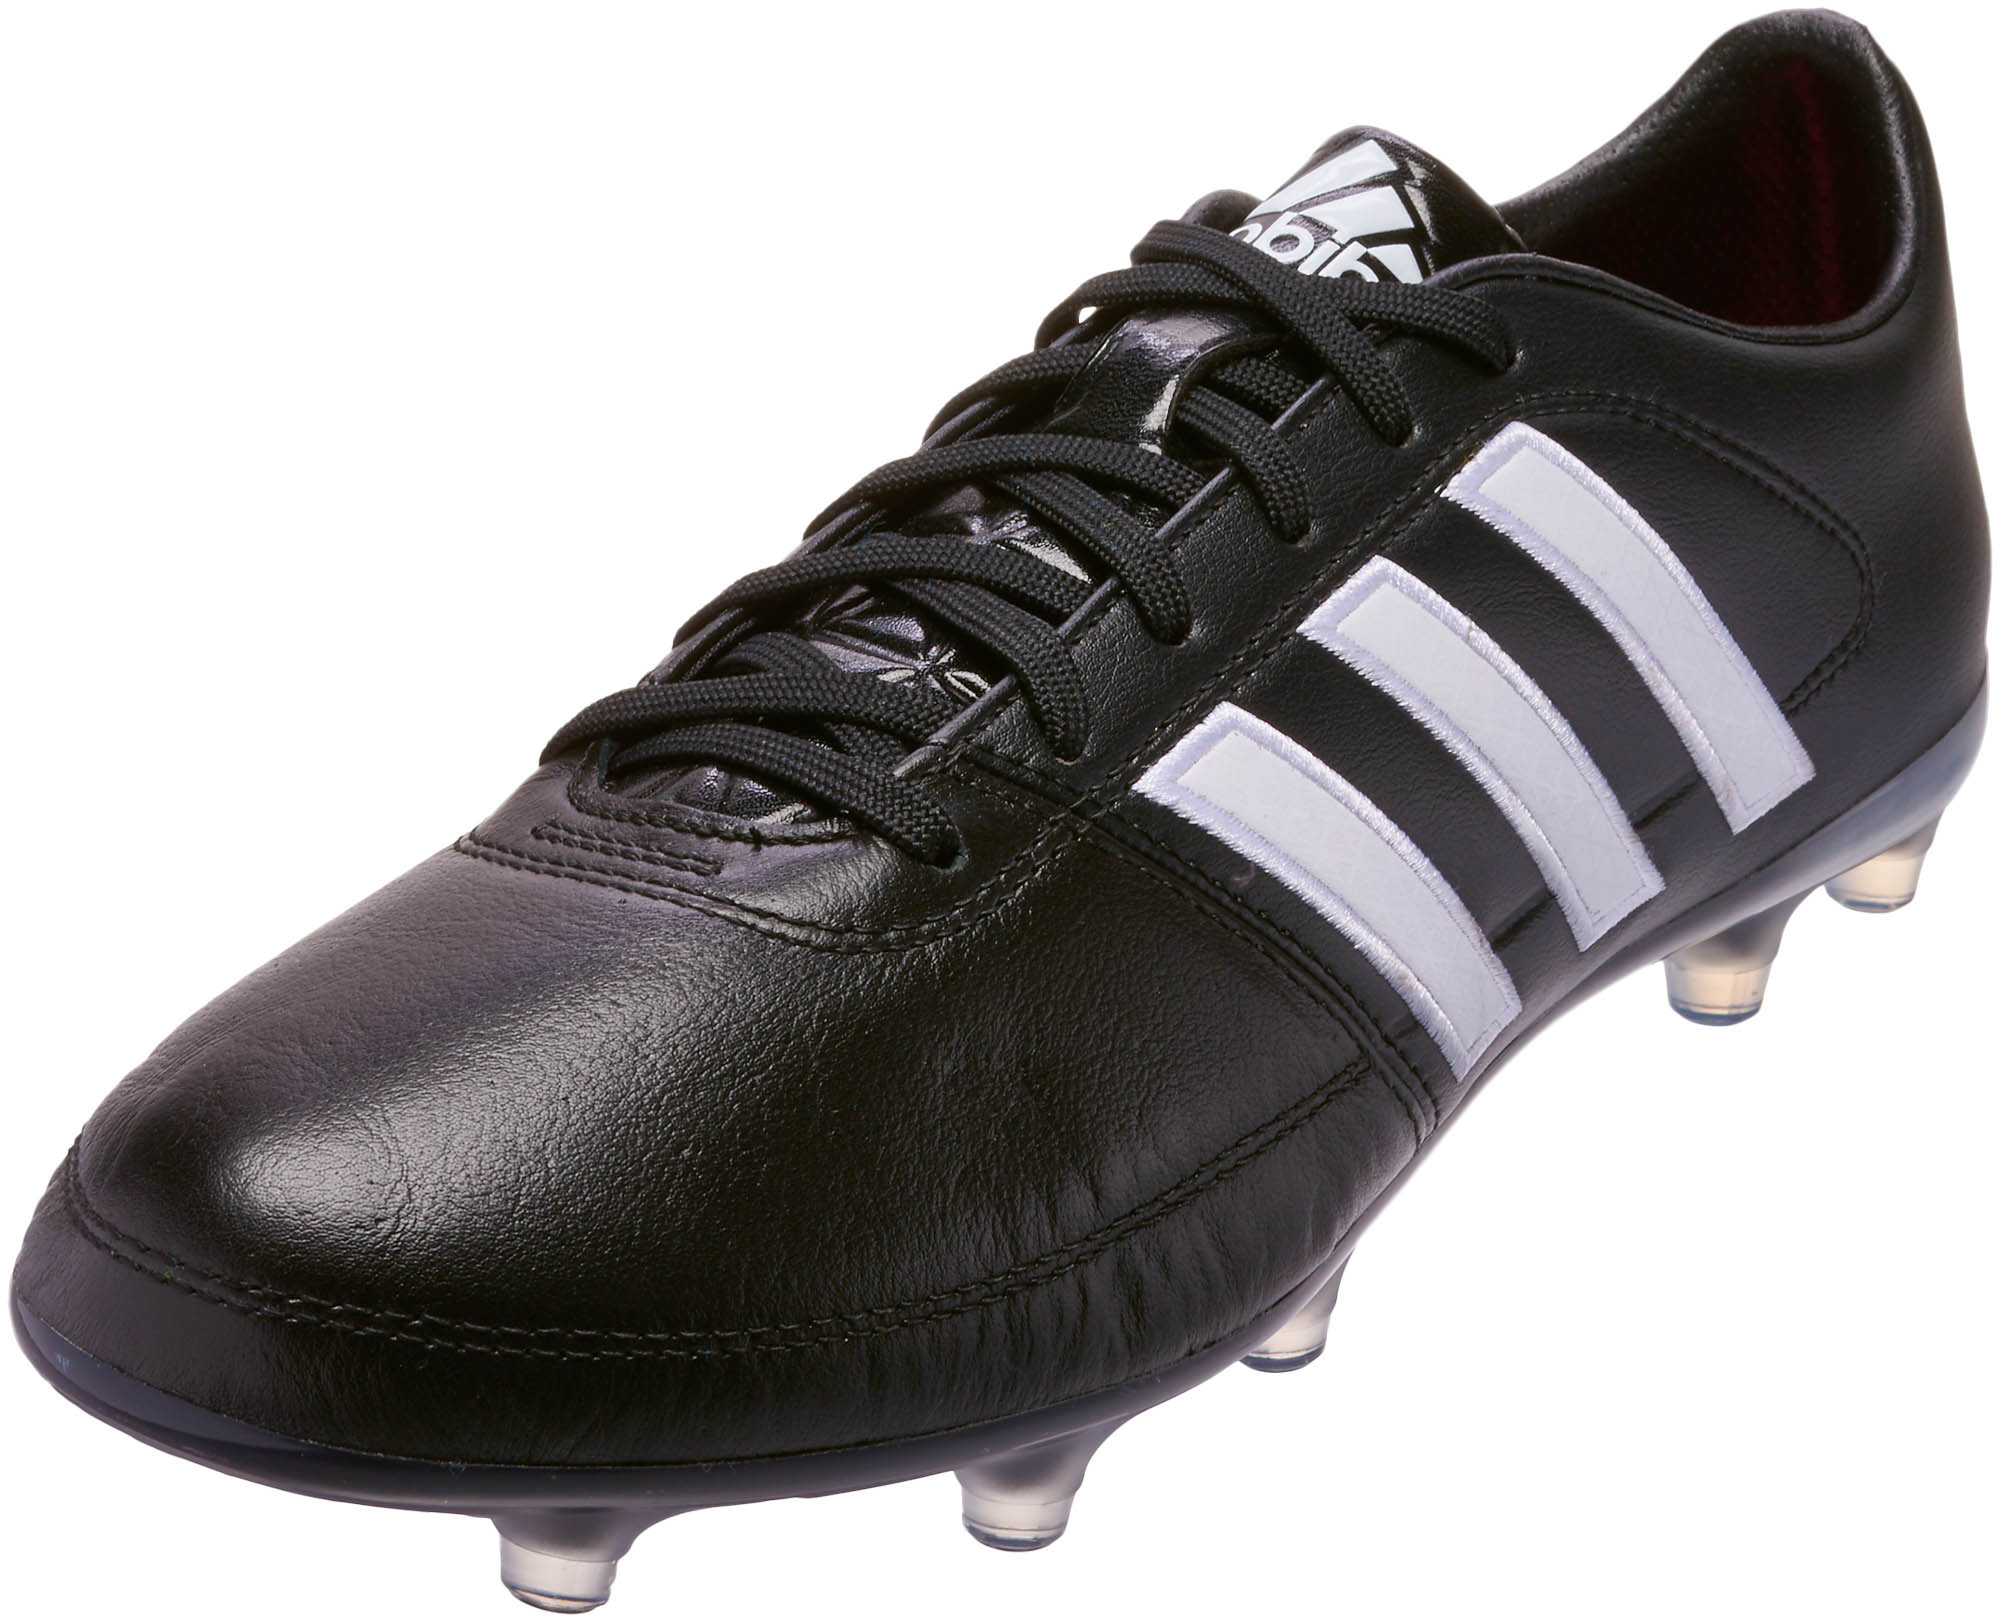 newest 30324 1c221 adidas Gloro 16.1 FG – BlackWhite